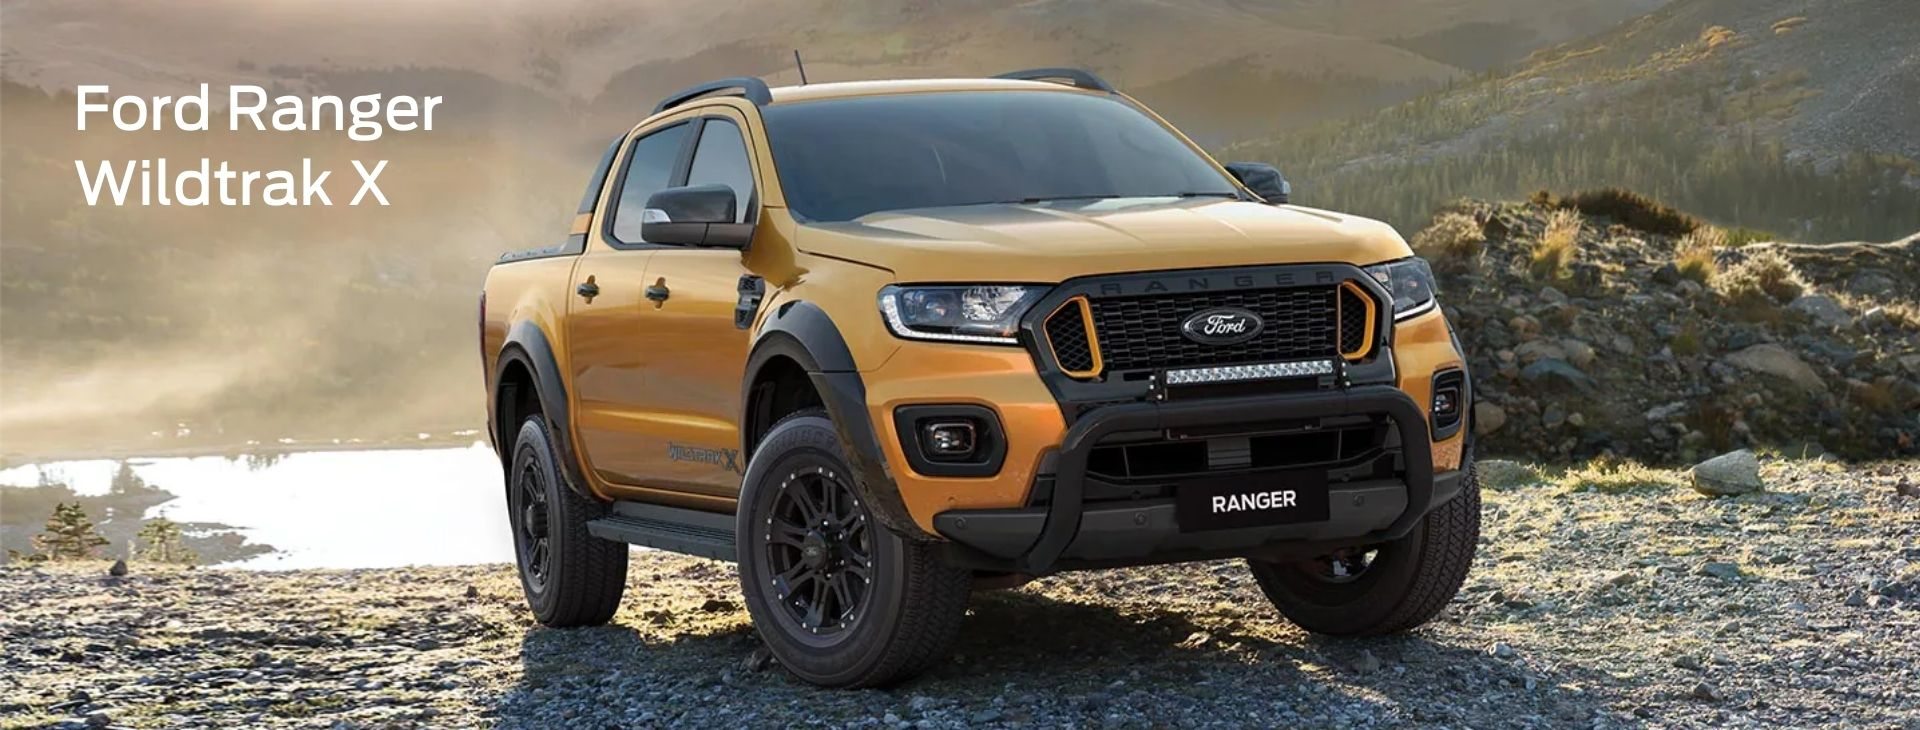 Ford Ranger Wildtrak X